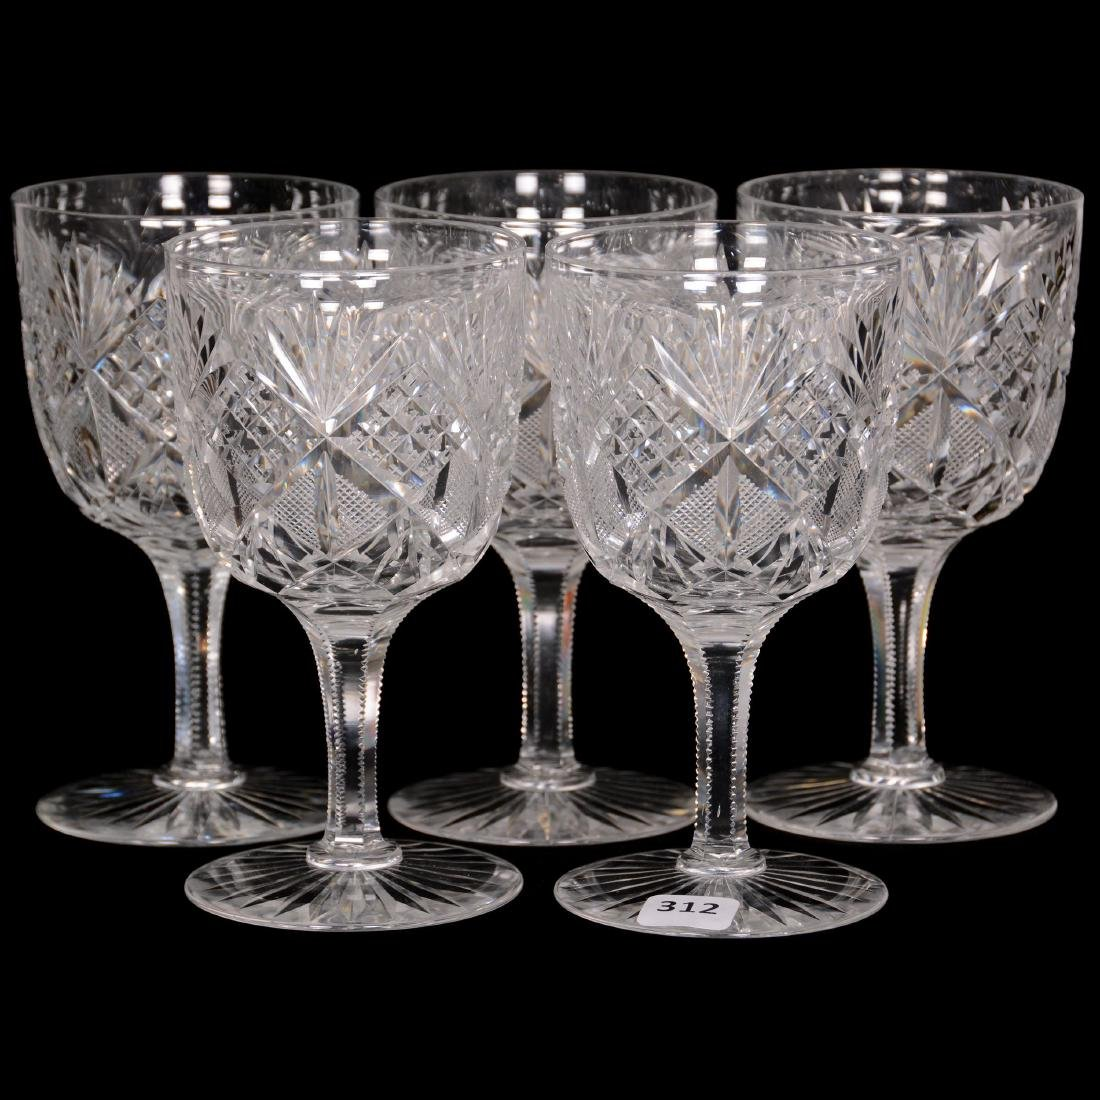 (5) Water Goblets - ABCG